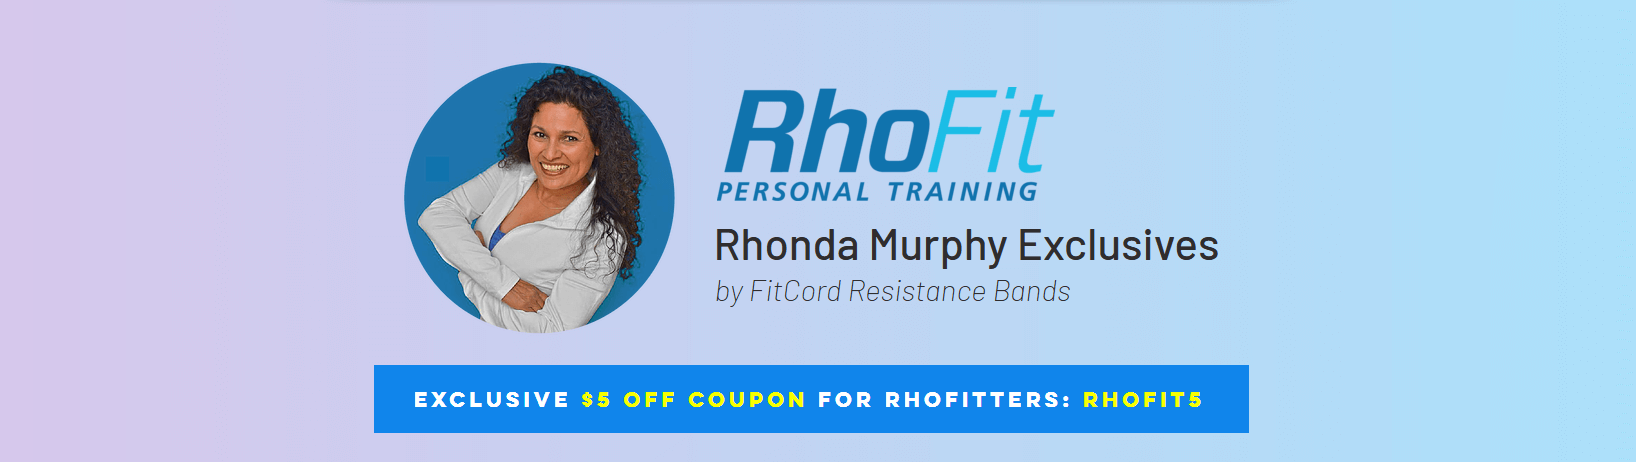 RhoFit Personal Training Exclusives with FitCord Resistance Bands Header